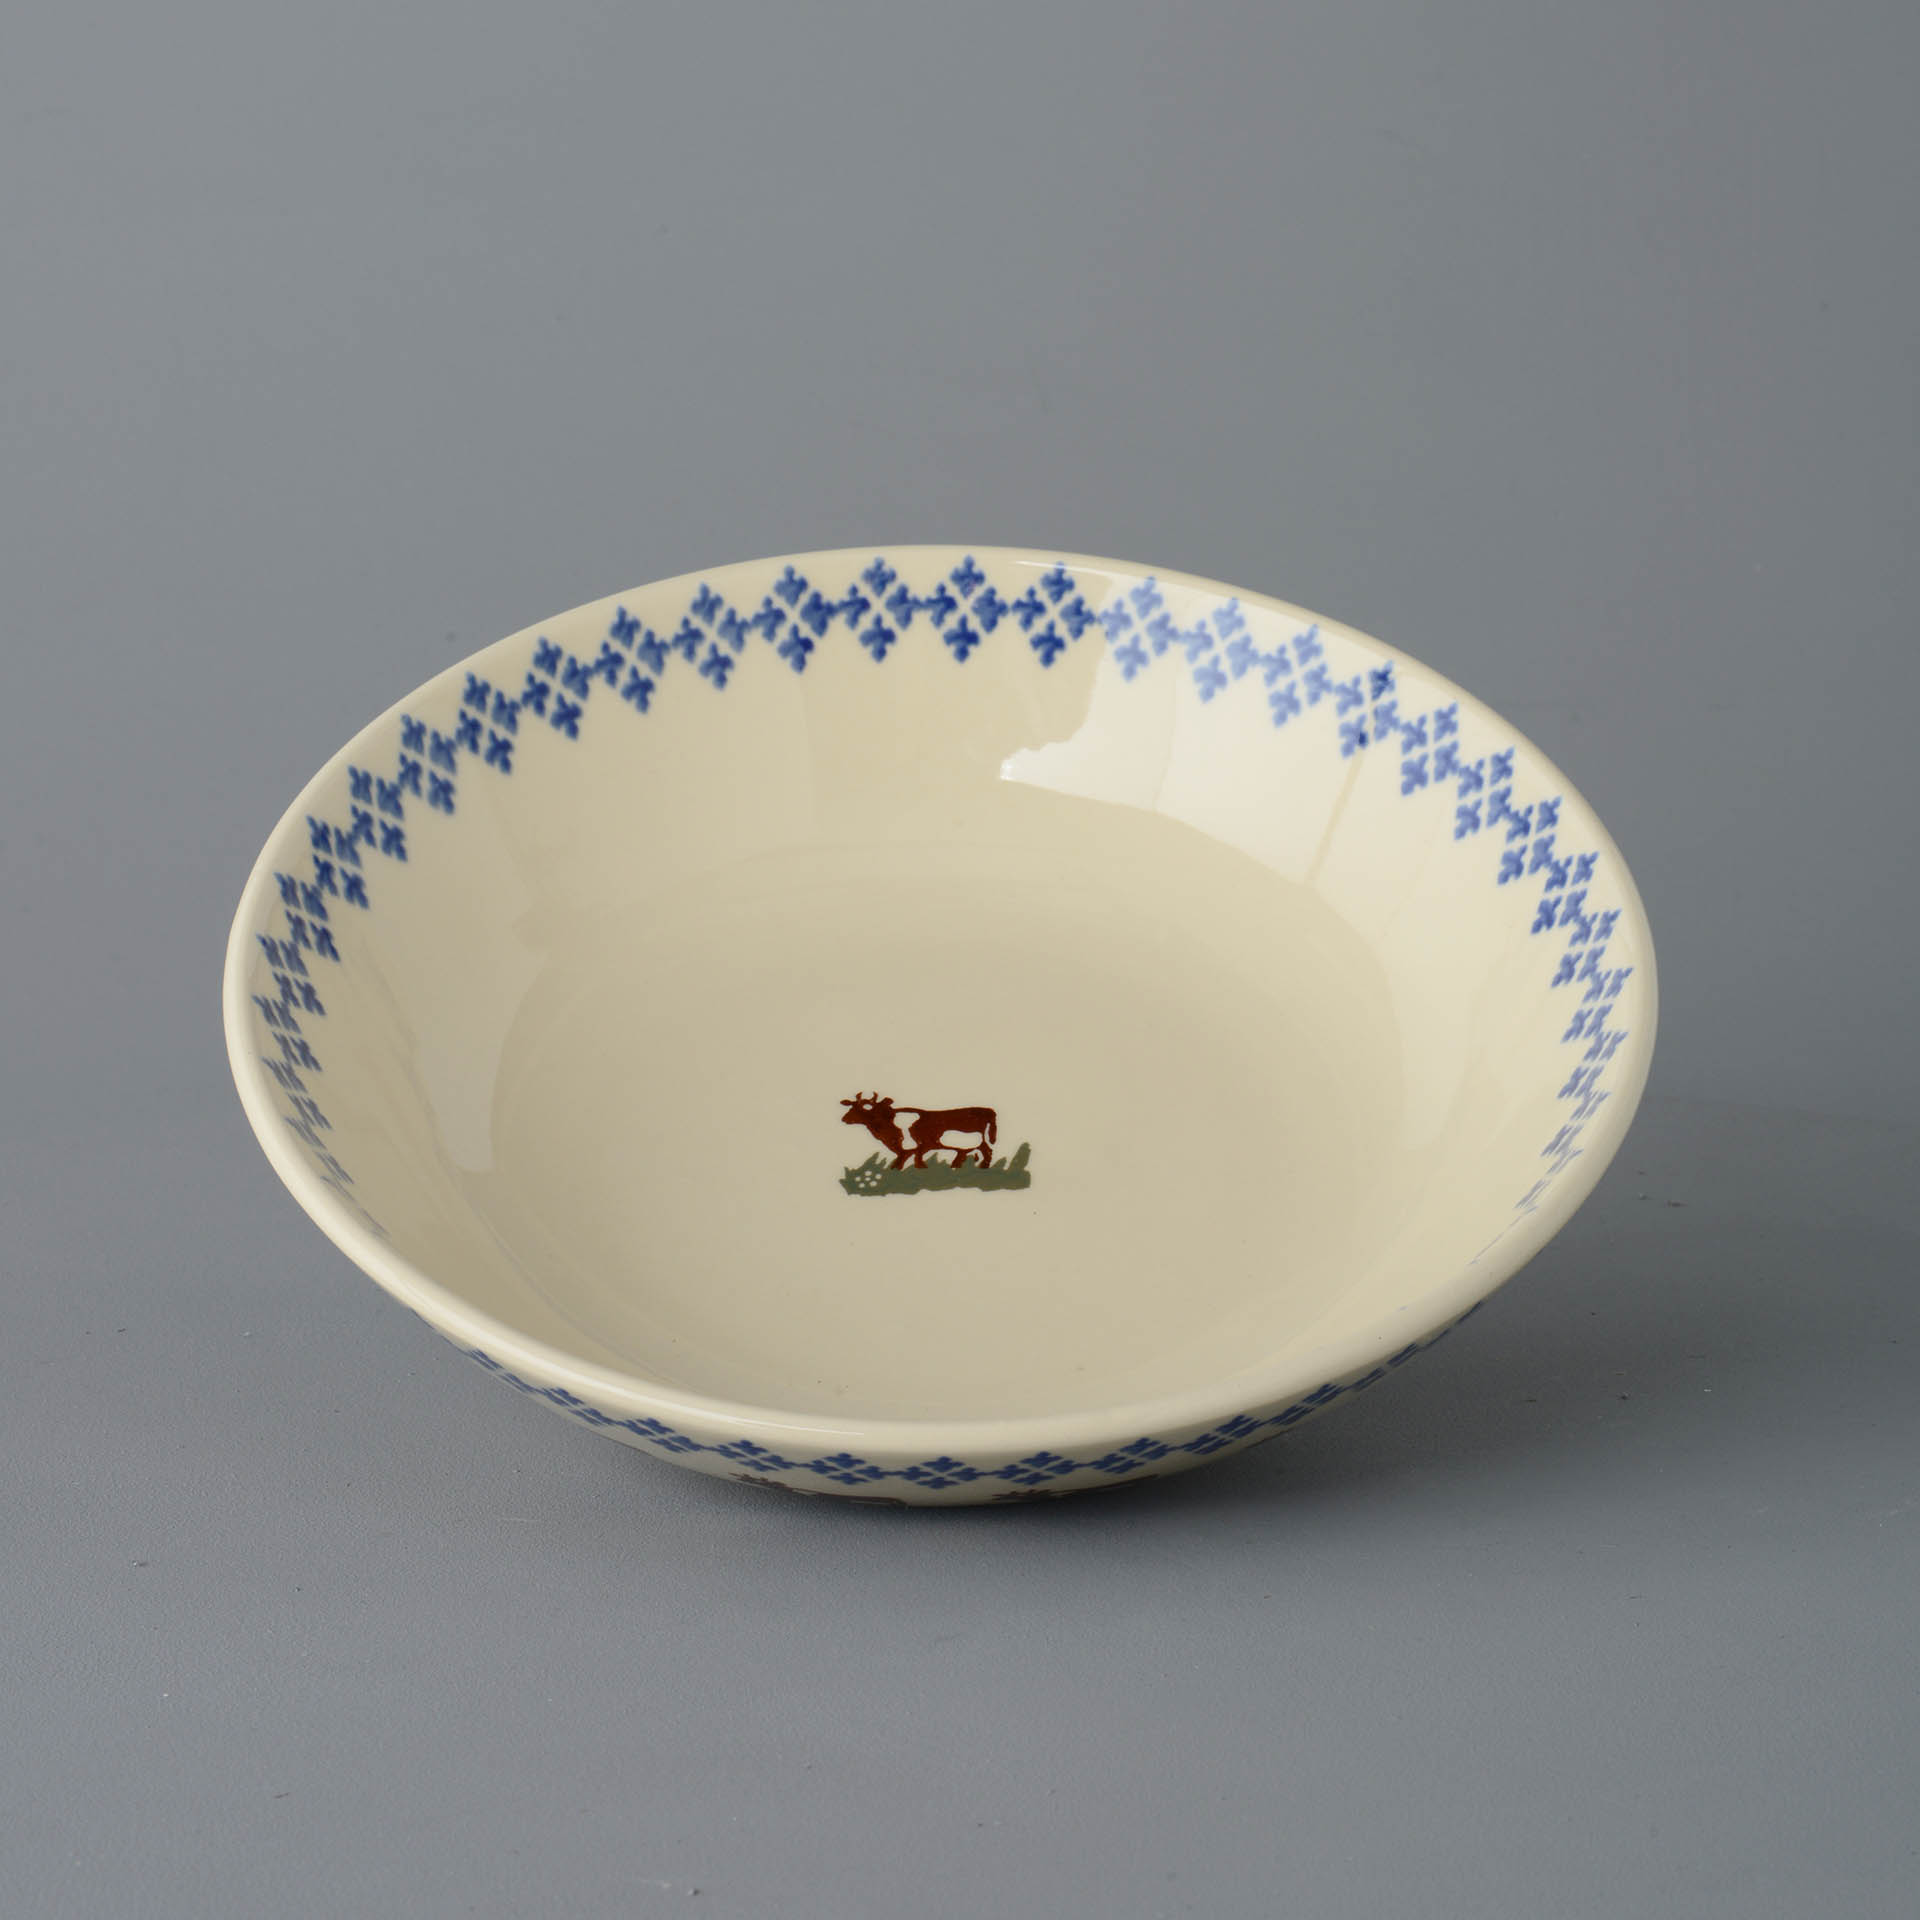 Cows Round Serving Dish 29 x 6.5cm